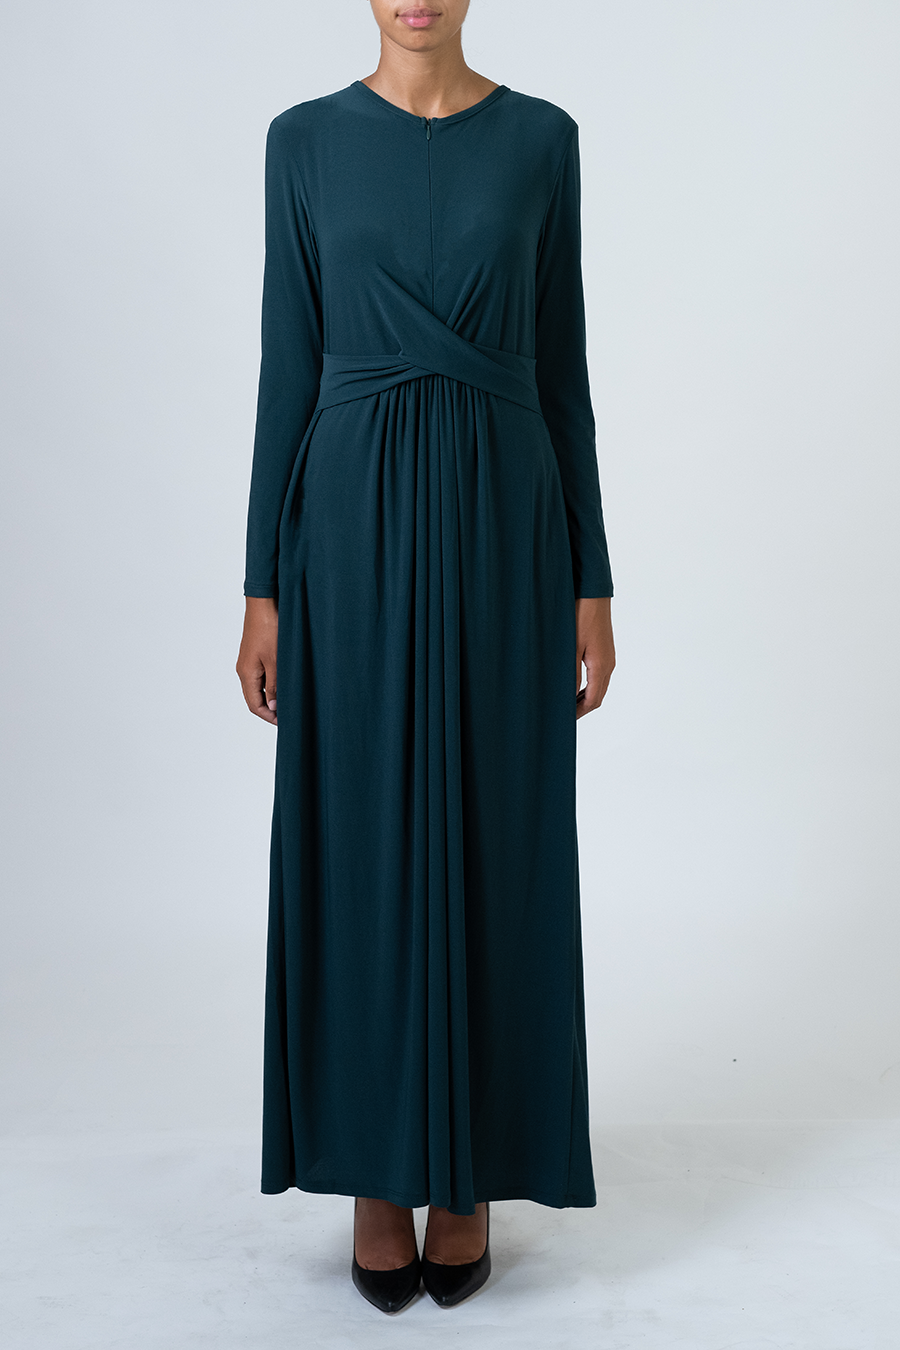 Knot Dress - Hunter Green